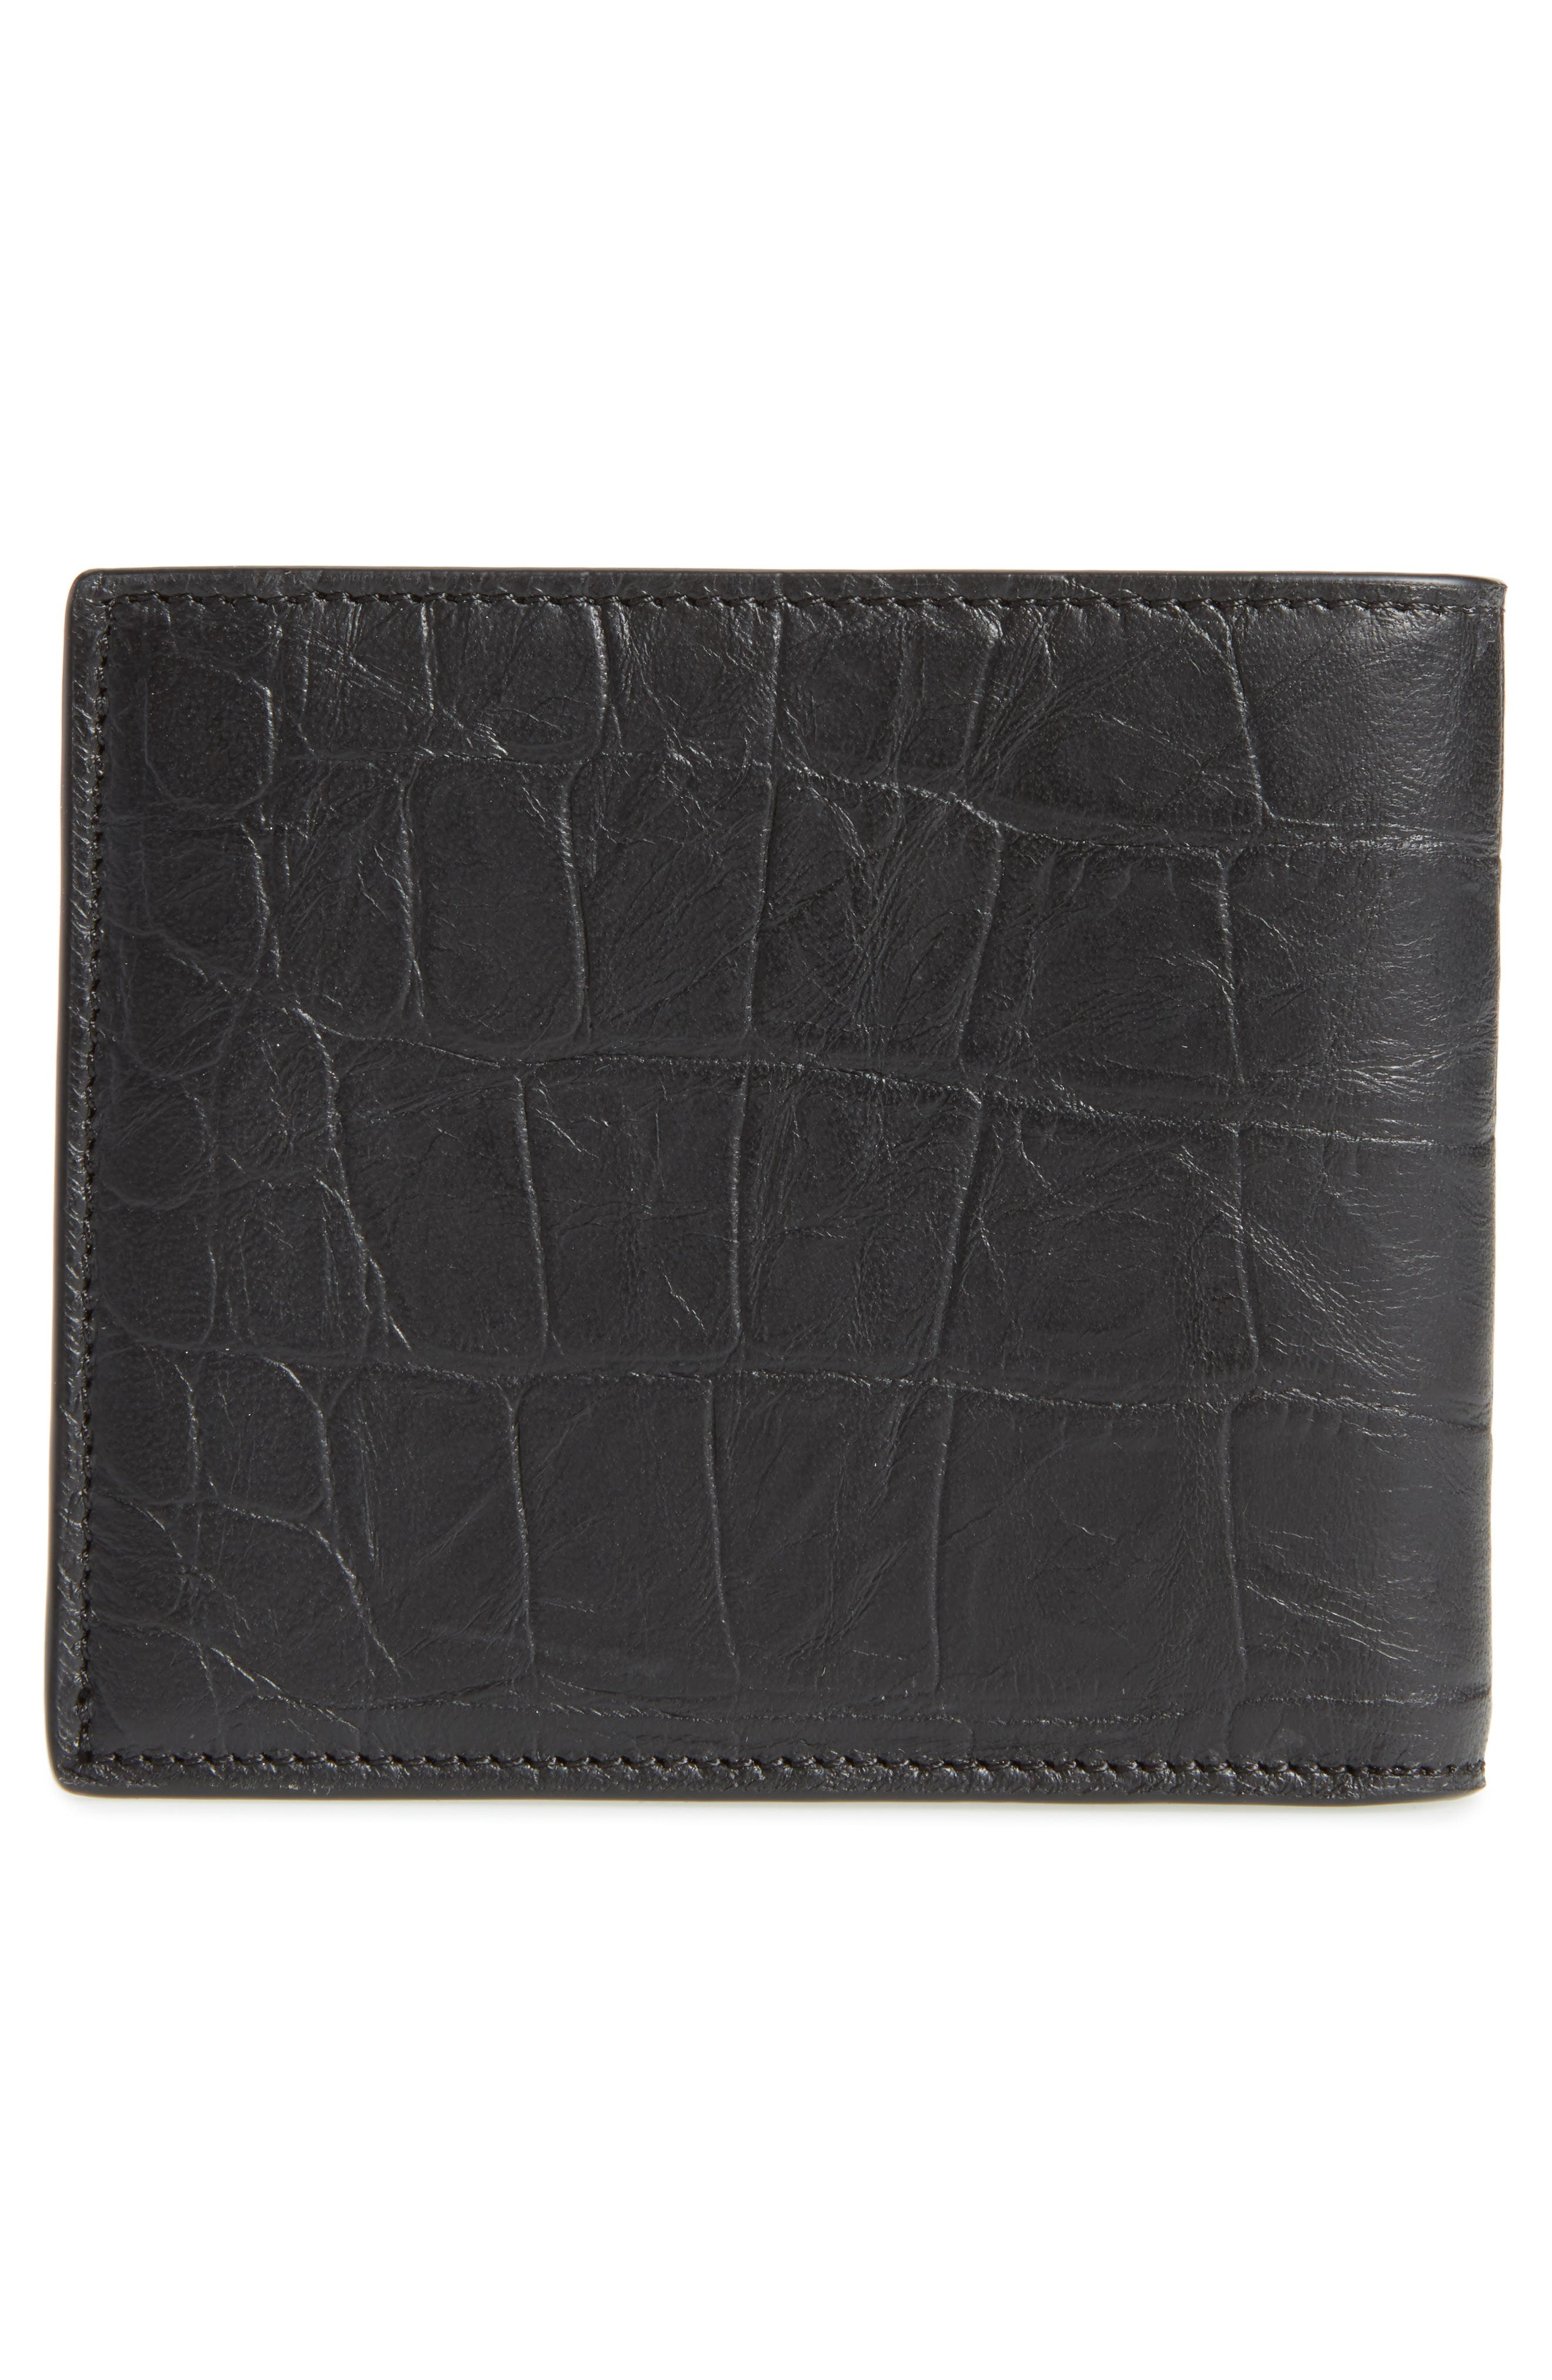 Croc Embossed Leather Wallet,                             Alternate thumbnail 3, color,                             001